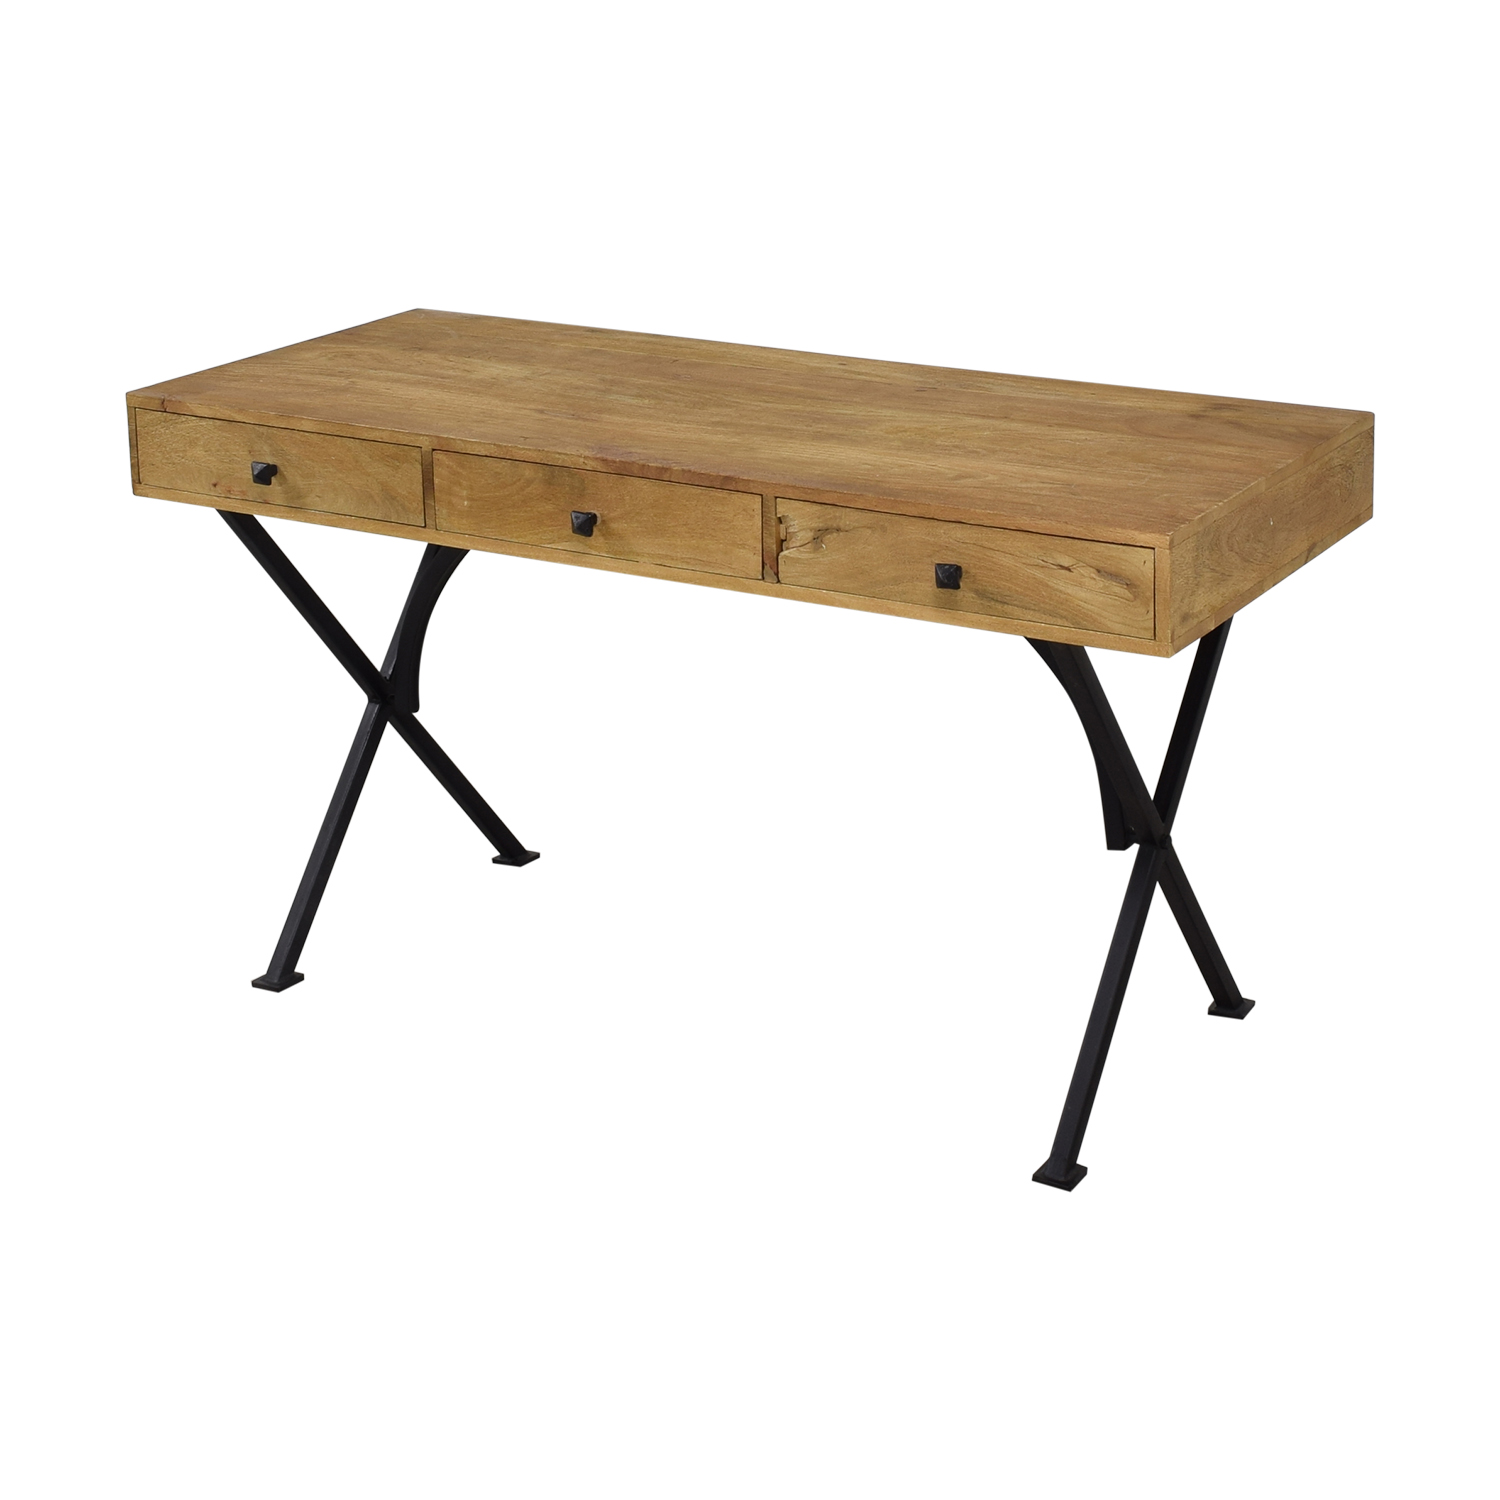 56 Off Pier 1 Pier 1 Metro Weathered Java Desk Tables